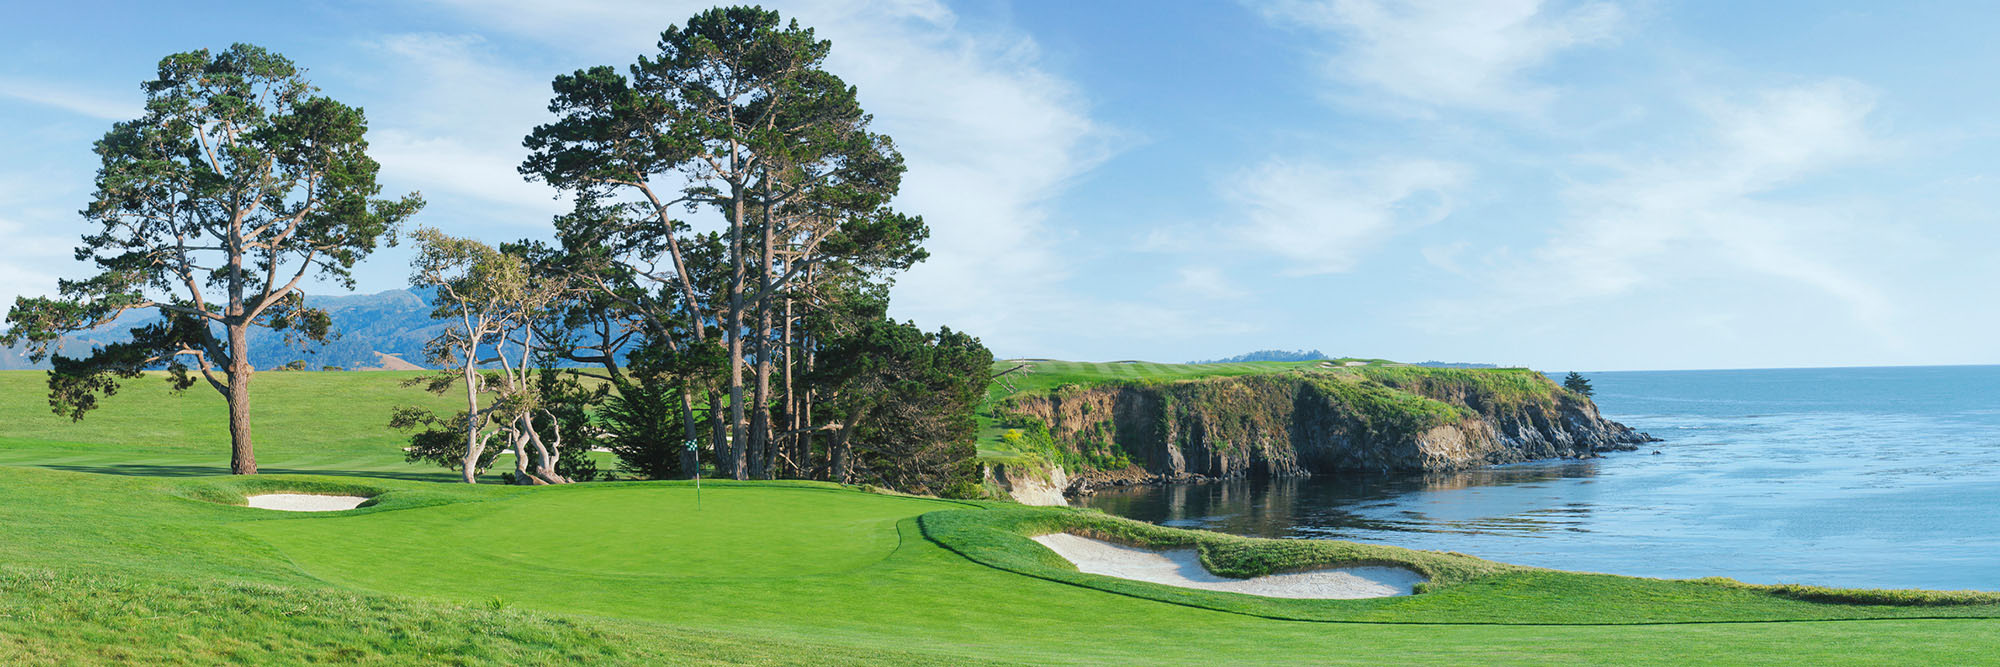 Golf Course Image - Pebble Beach No. 5